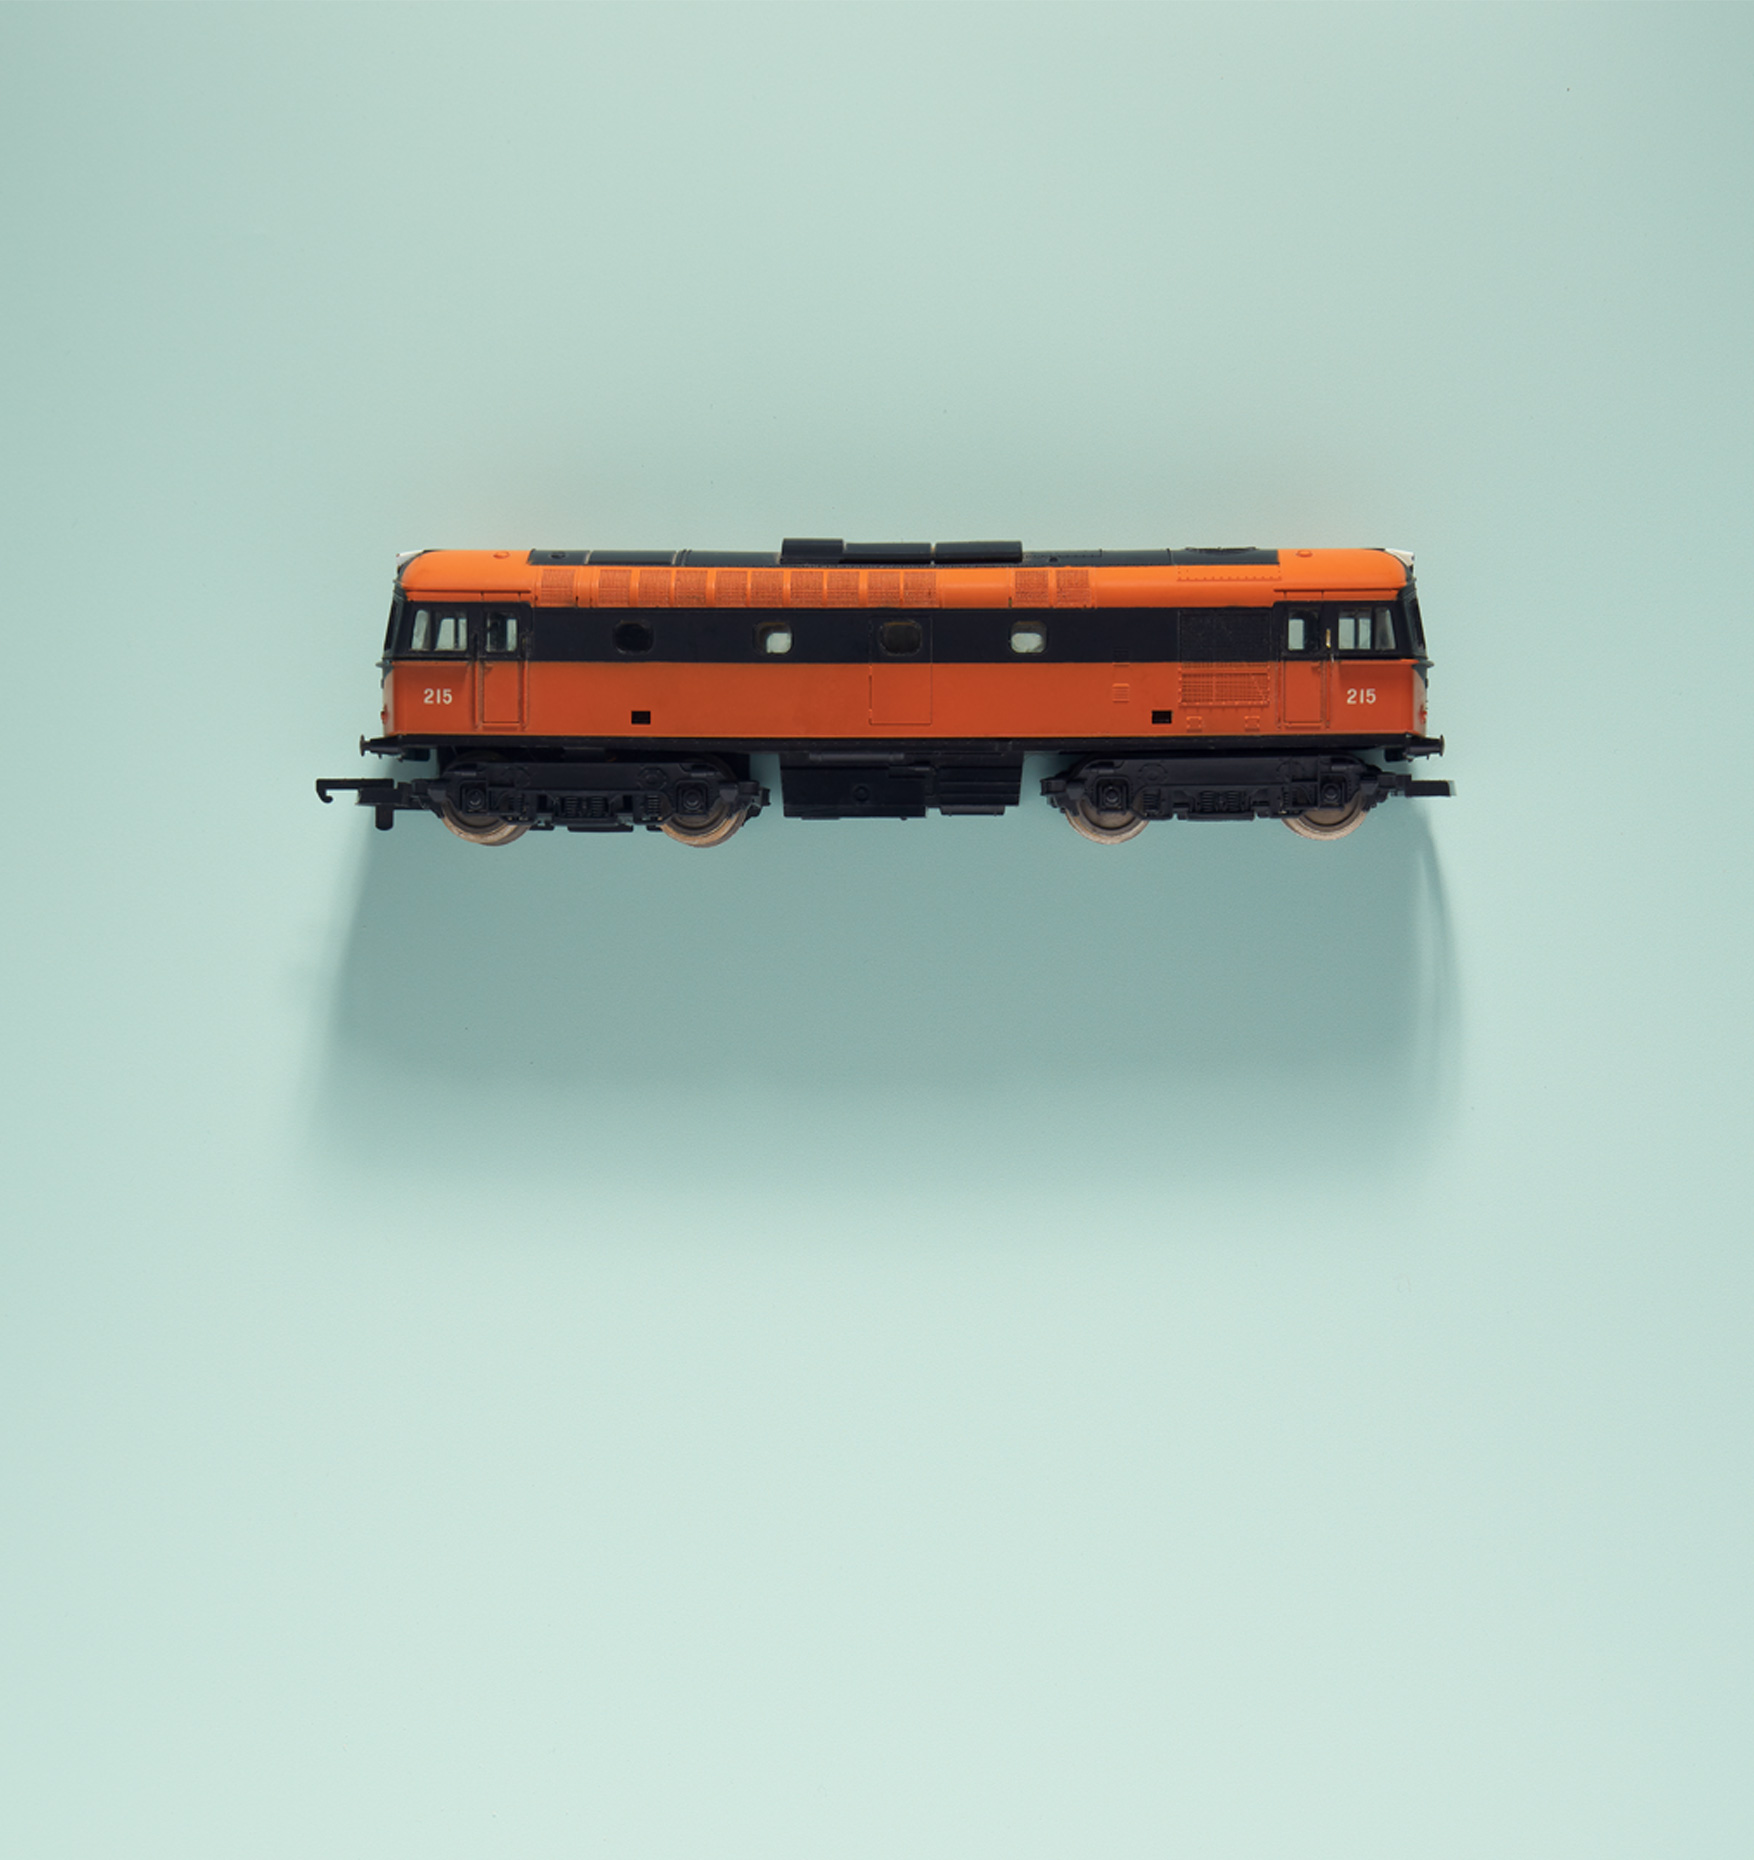 creative still life photography: an old CIE diesel locomotive